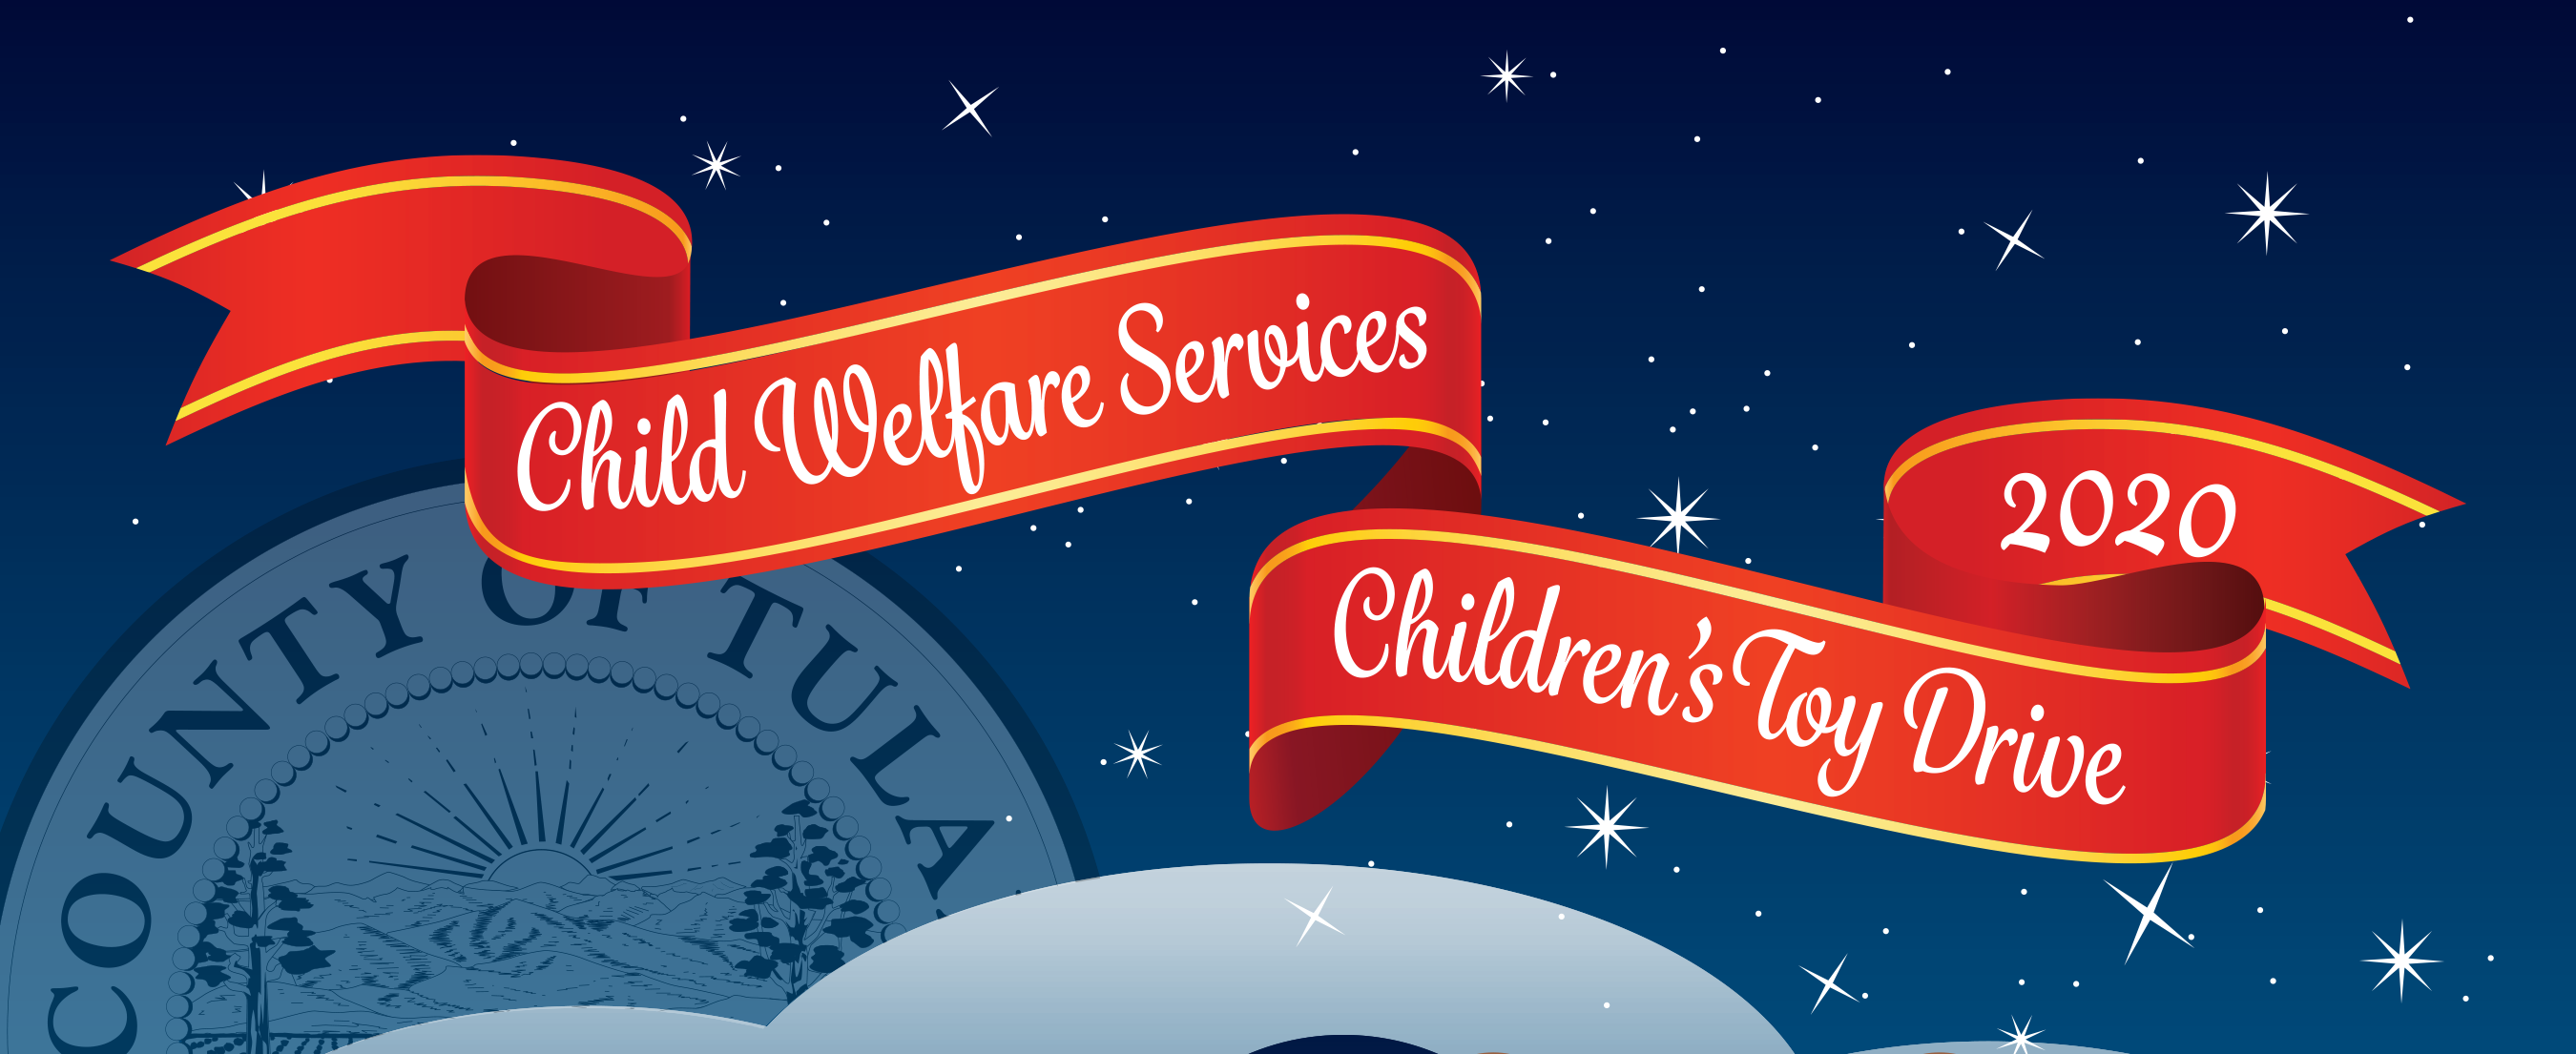 Child Welfare Services - Children's Toy Drive - 2019